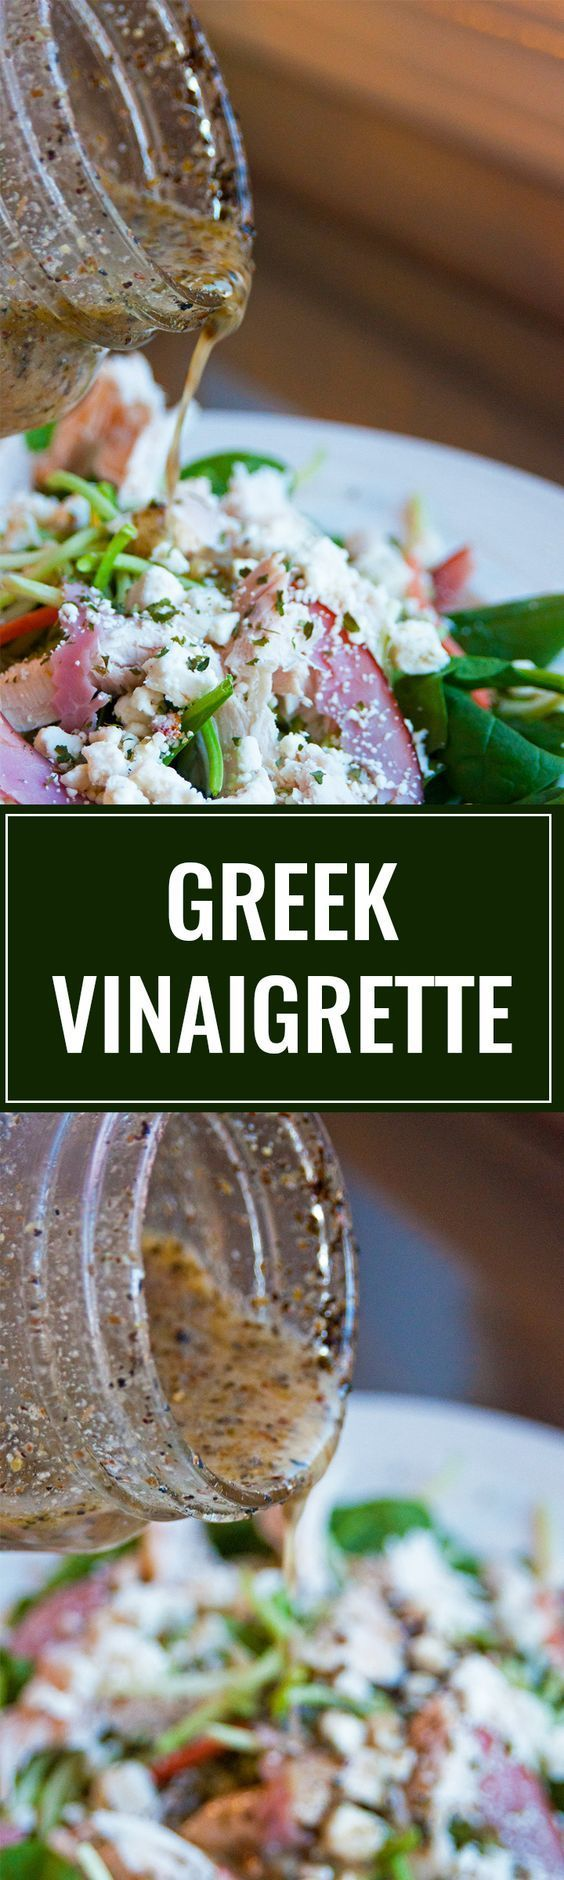 Homemade Greek Vinaigrette. This homemade salad dressing is delicious over salads  as a marinade and on a greek pizza! This healthy recipe packs a clean eating punch! |Homemade Greek Vinaigrette. This homemade salad dressing is delicious over salads  as a marinade and on a greek pizza! This healthy recipe packs a clean eating punch! |thebewitchinkitch...